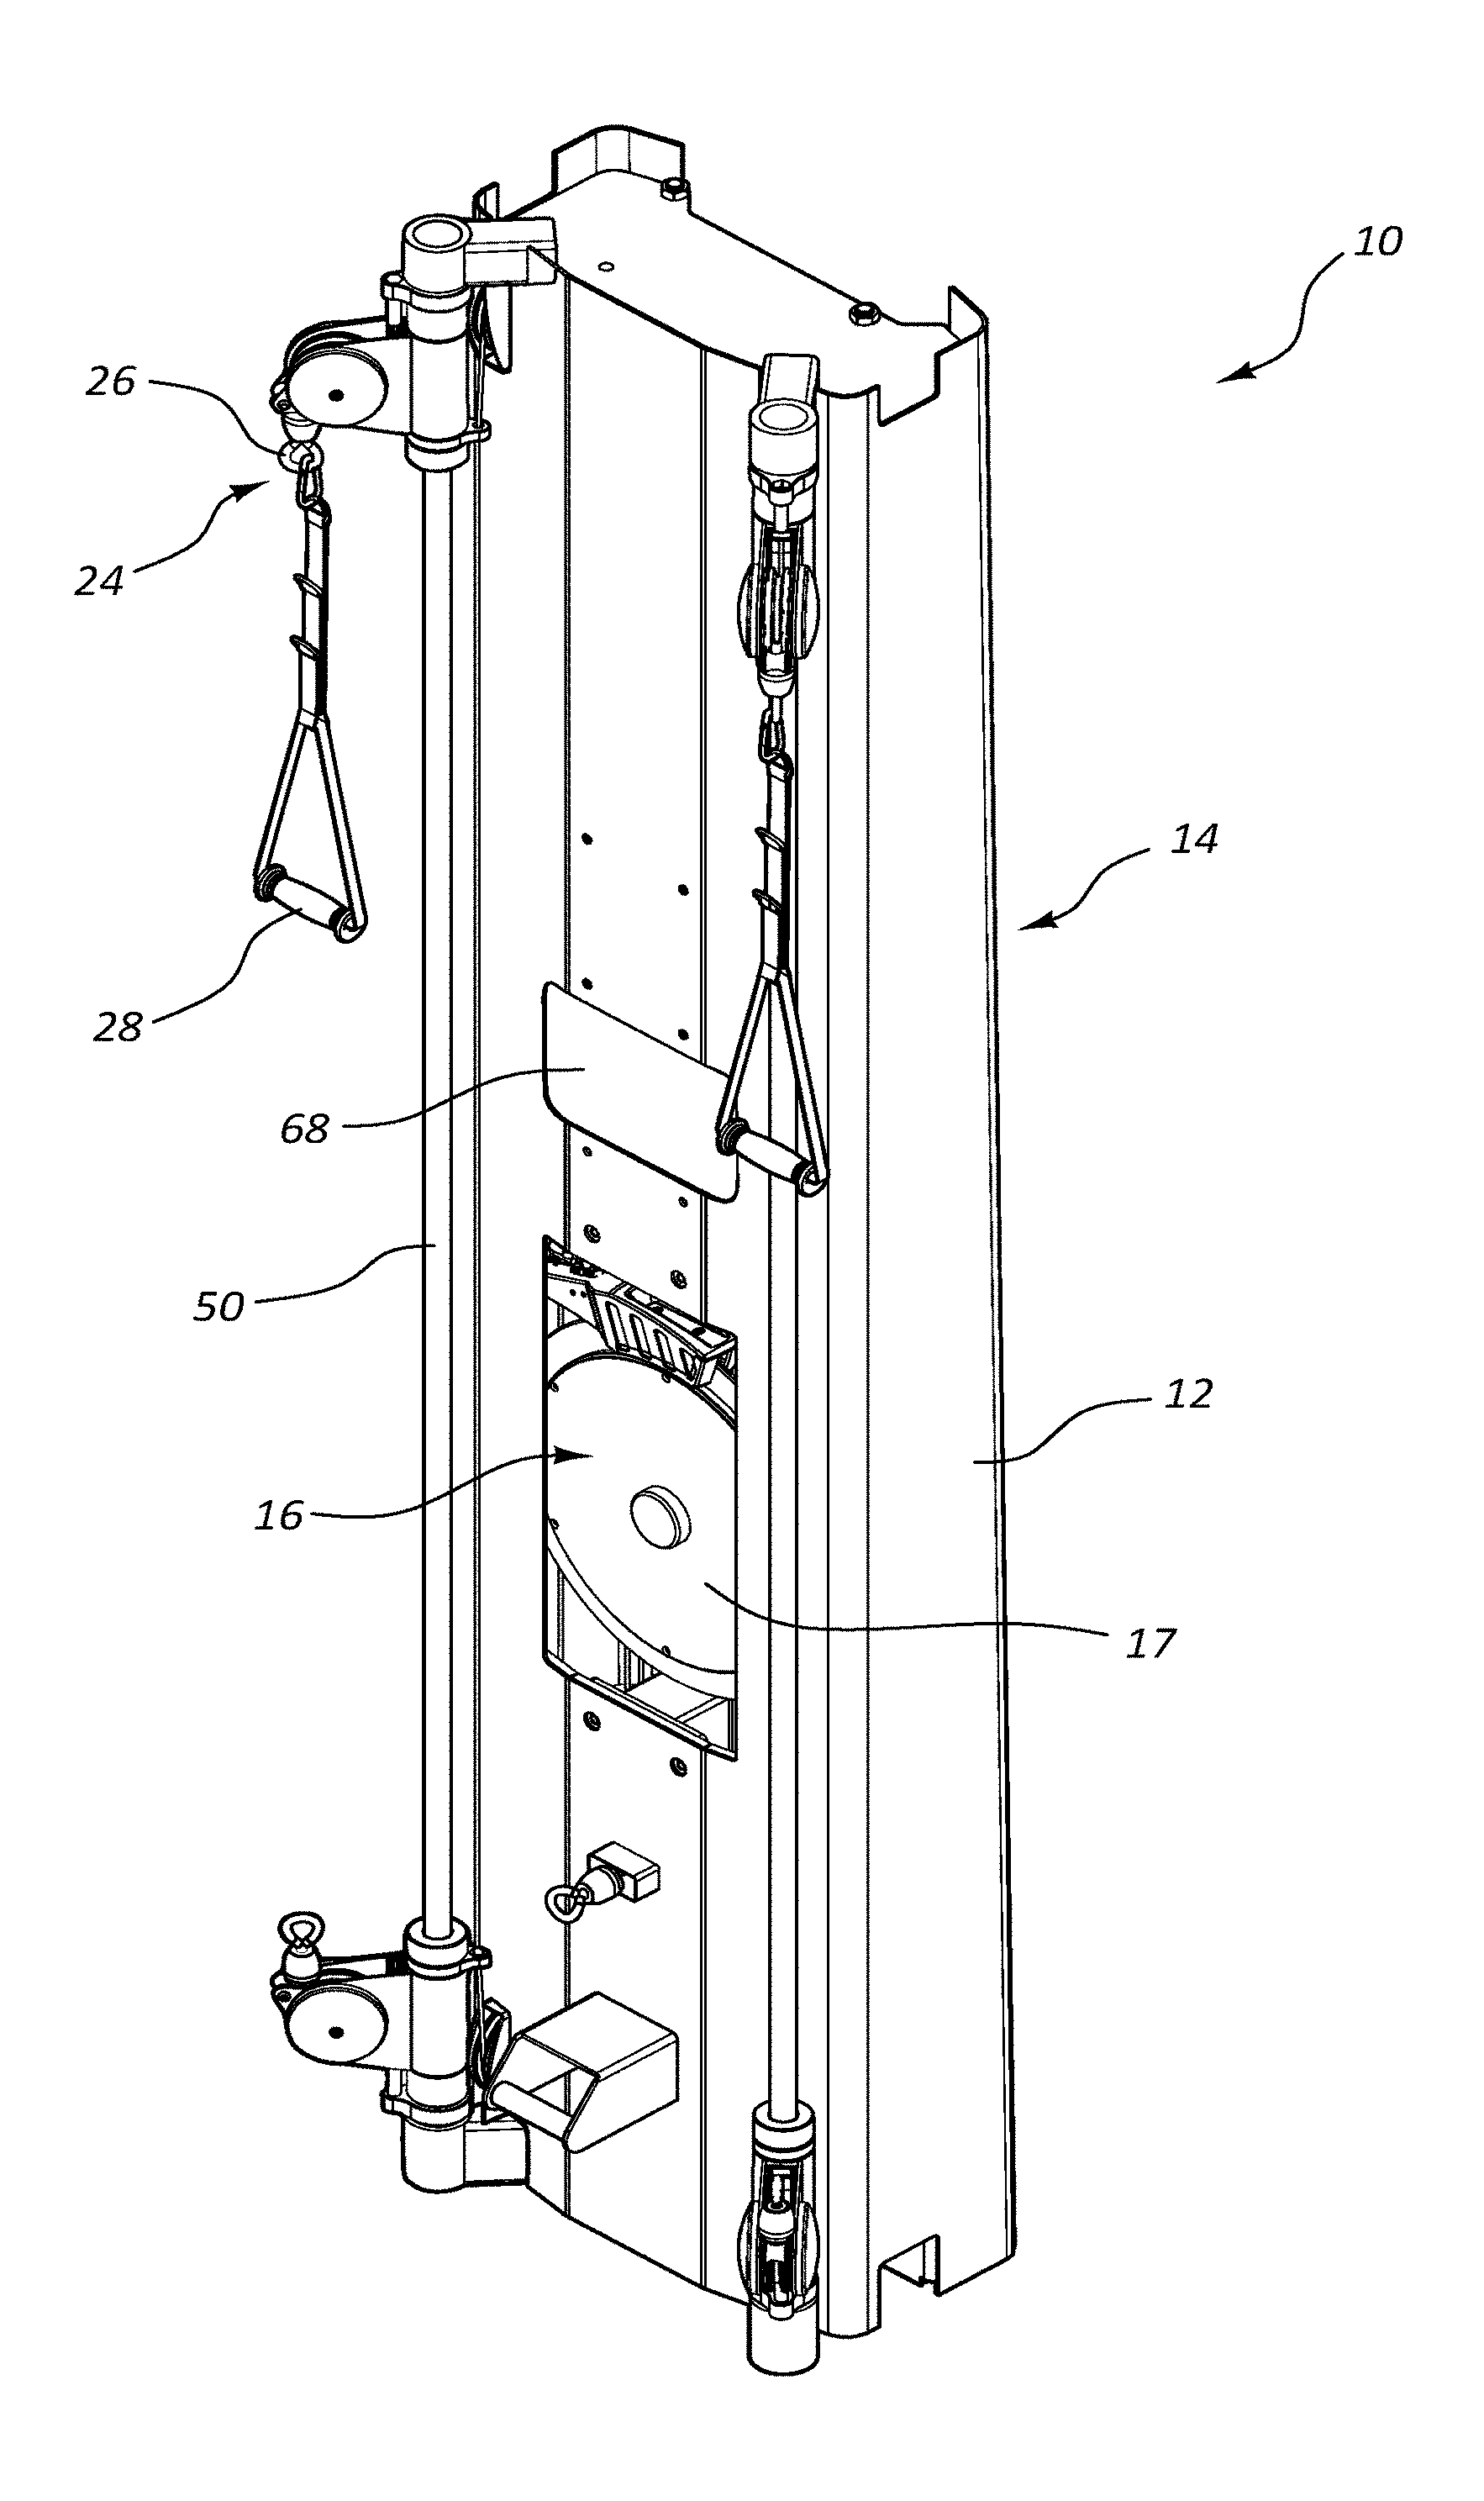 merz drum switch wiring diagram us20190151698a1 magnetic resistance mechanism in a cable machine  us20190151698a1 magnetic resistance